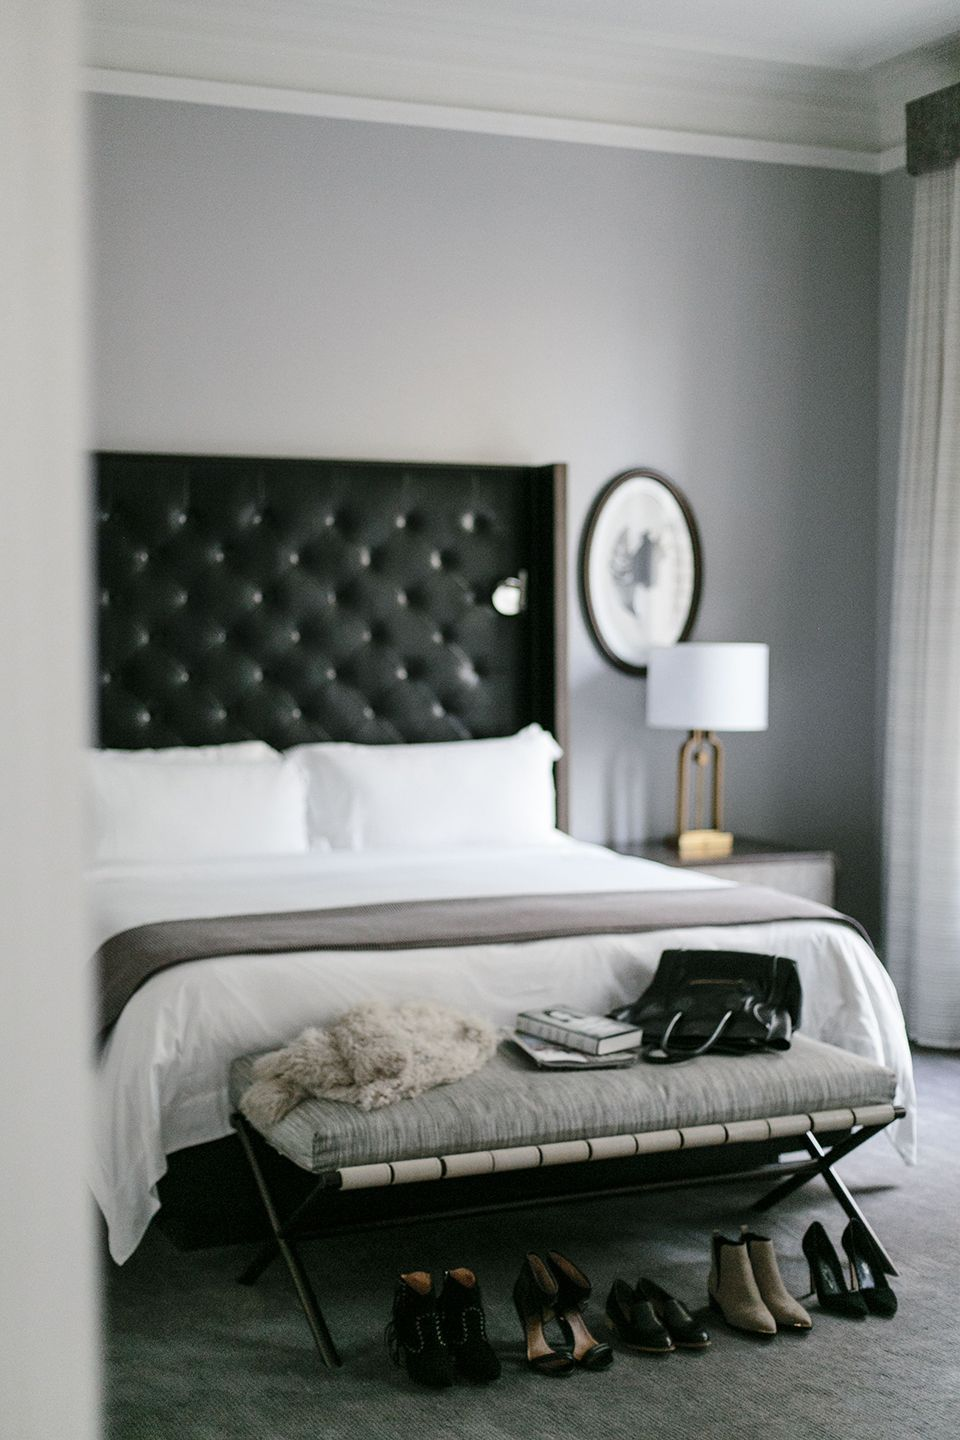 black headboard and frame on where to stay in san francisco cheetah is the new black black headboard bedroom black headboard bedroom interior black headboard bedroom